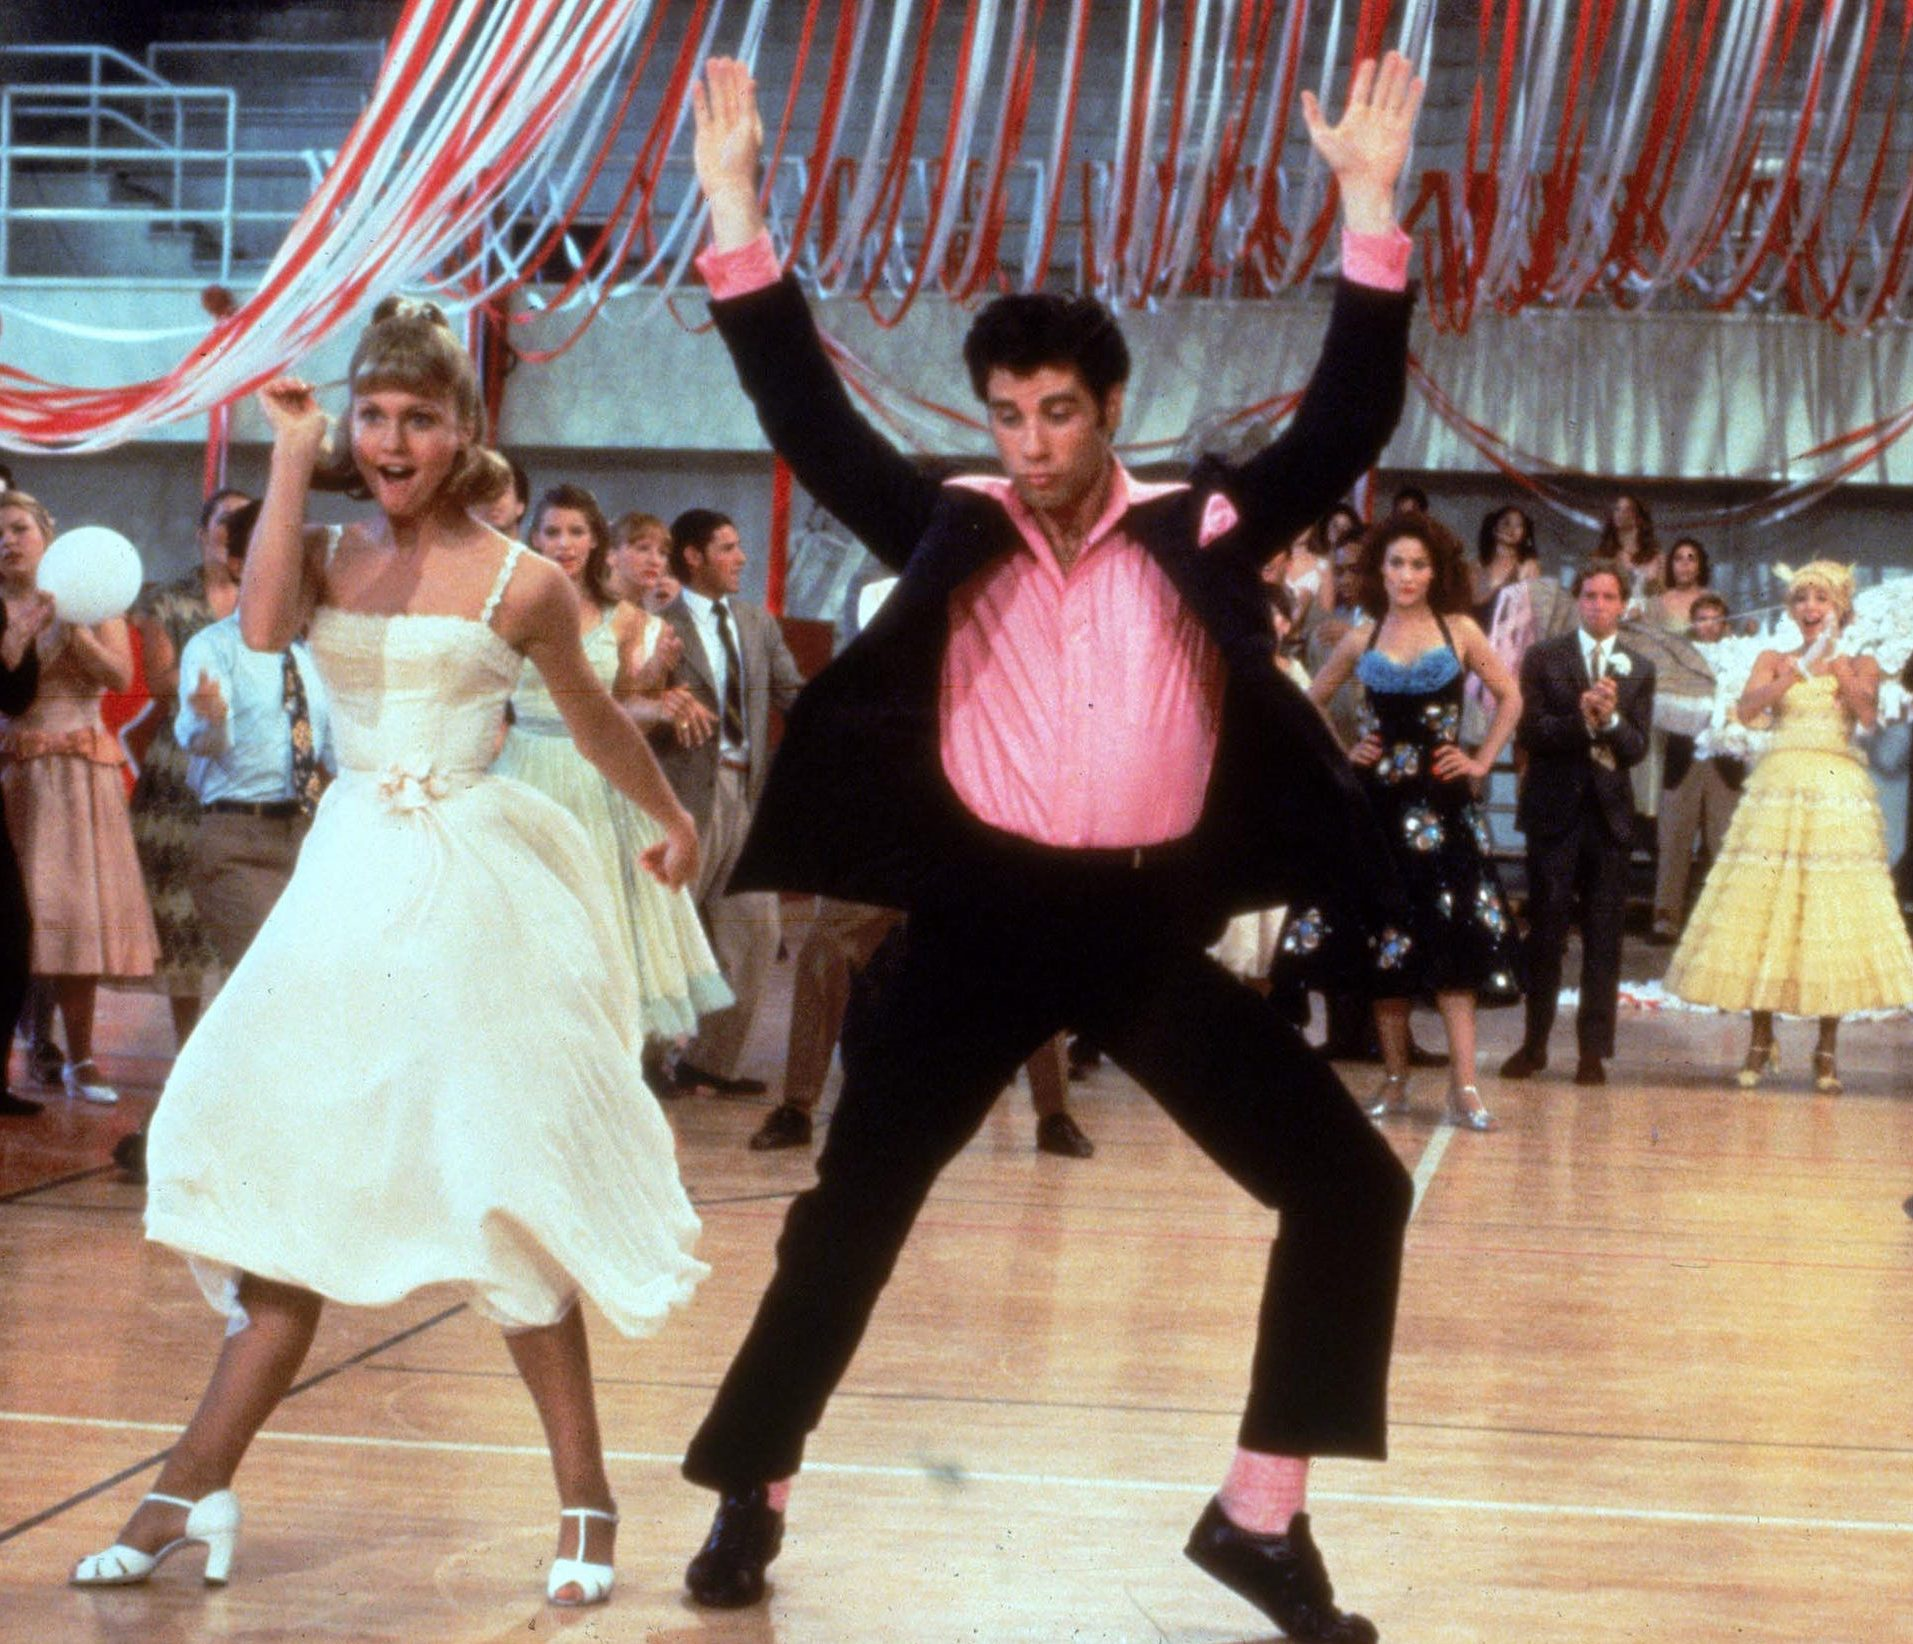 636636104504801776 GREASE003 e1609756106495 35 Great Movie Romances That Are Actually Deeply Problematic